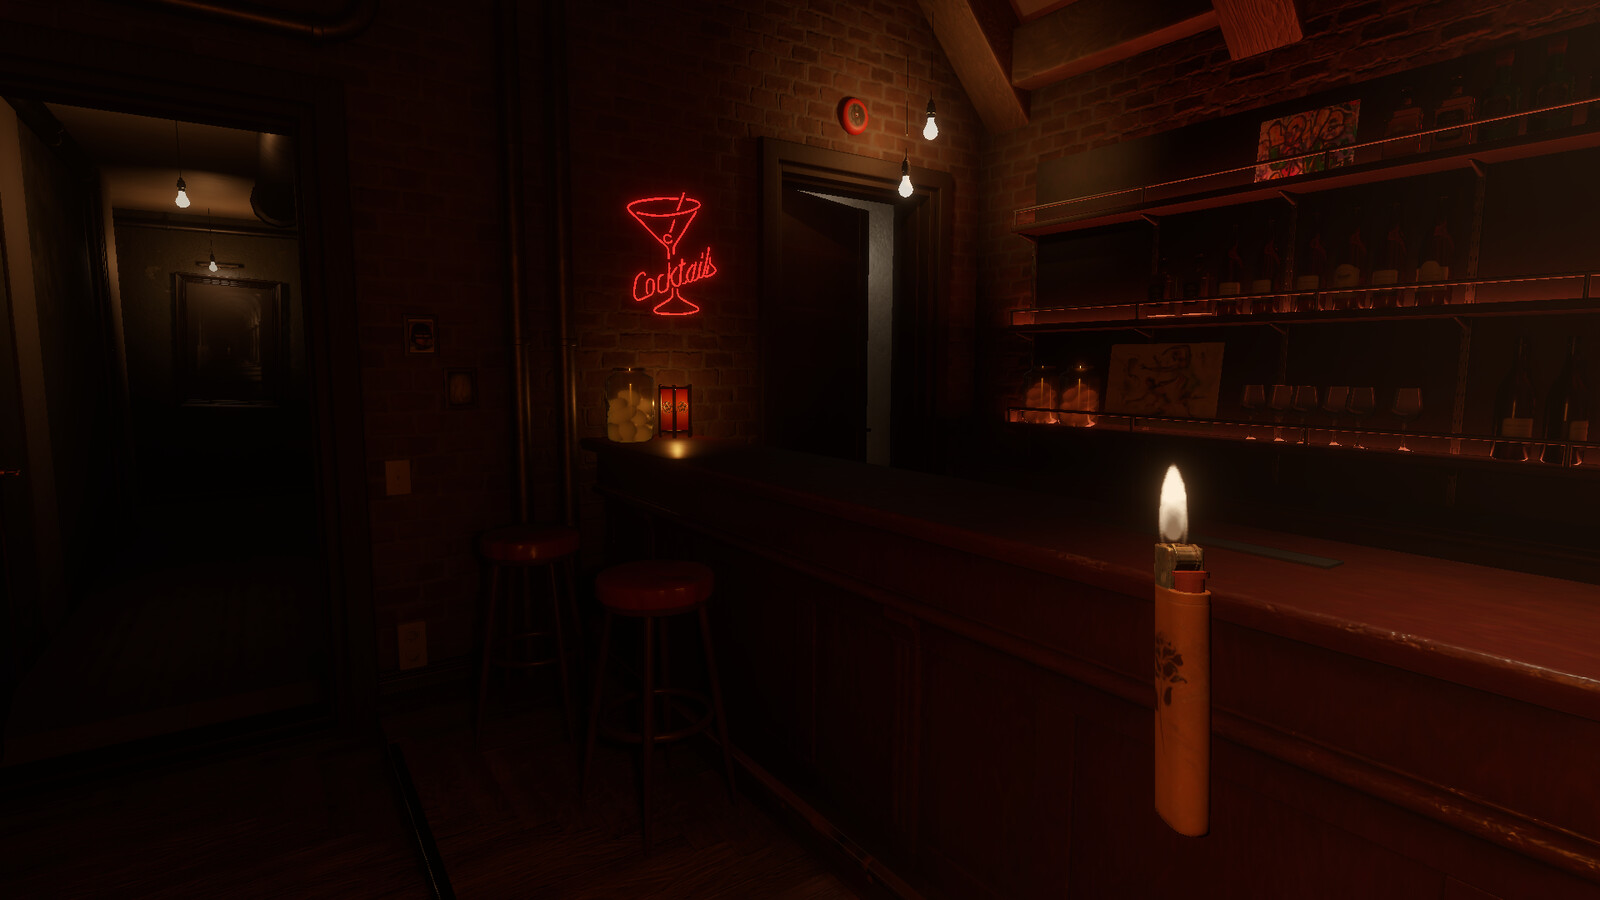 Cocktail neon sign, pickled egg jar and fire alarm modeled and textured by me.